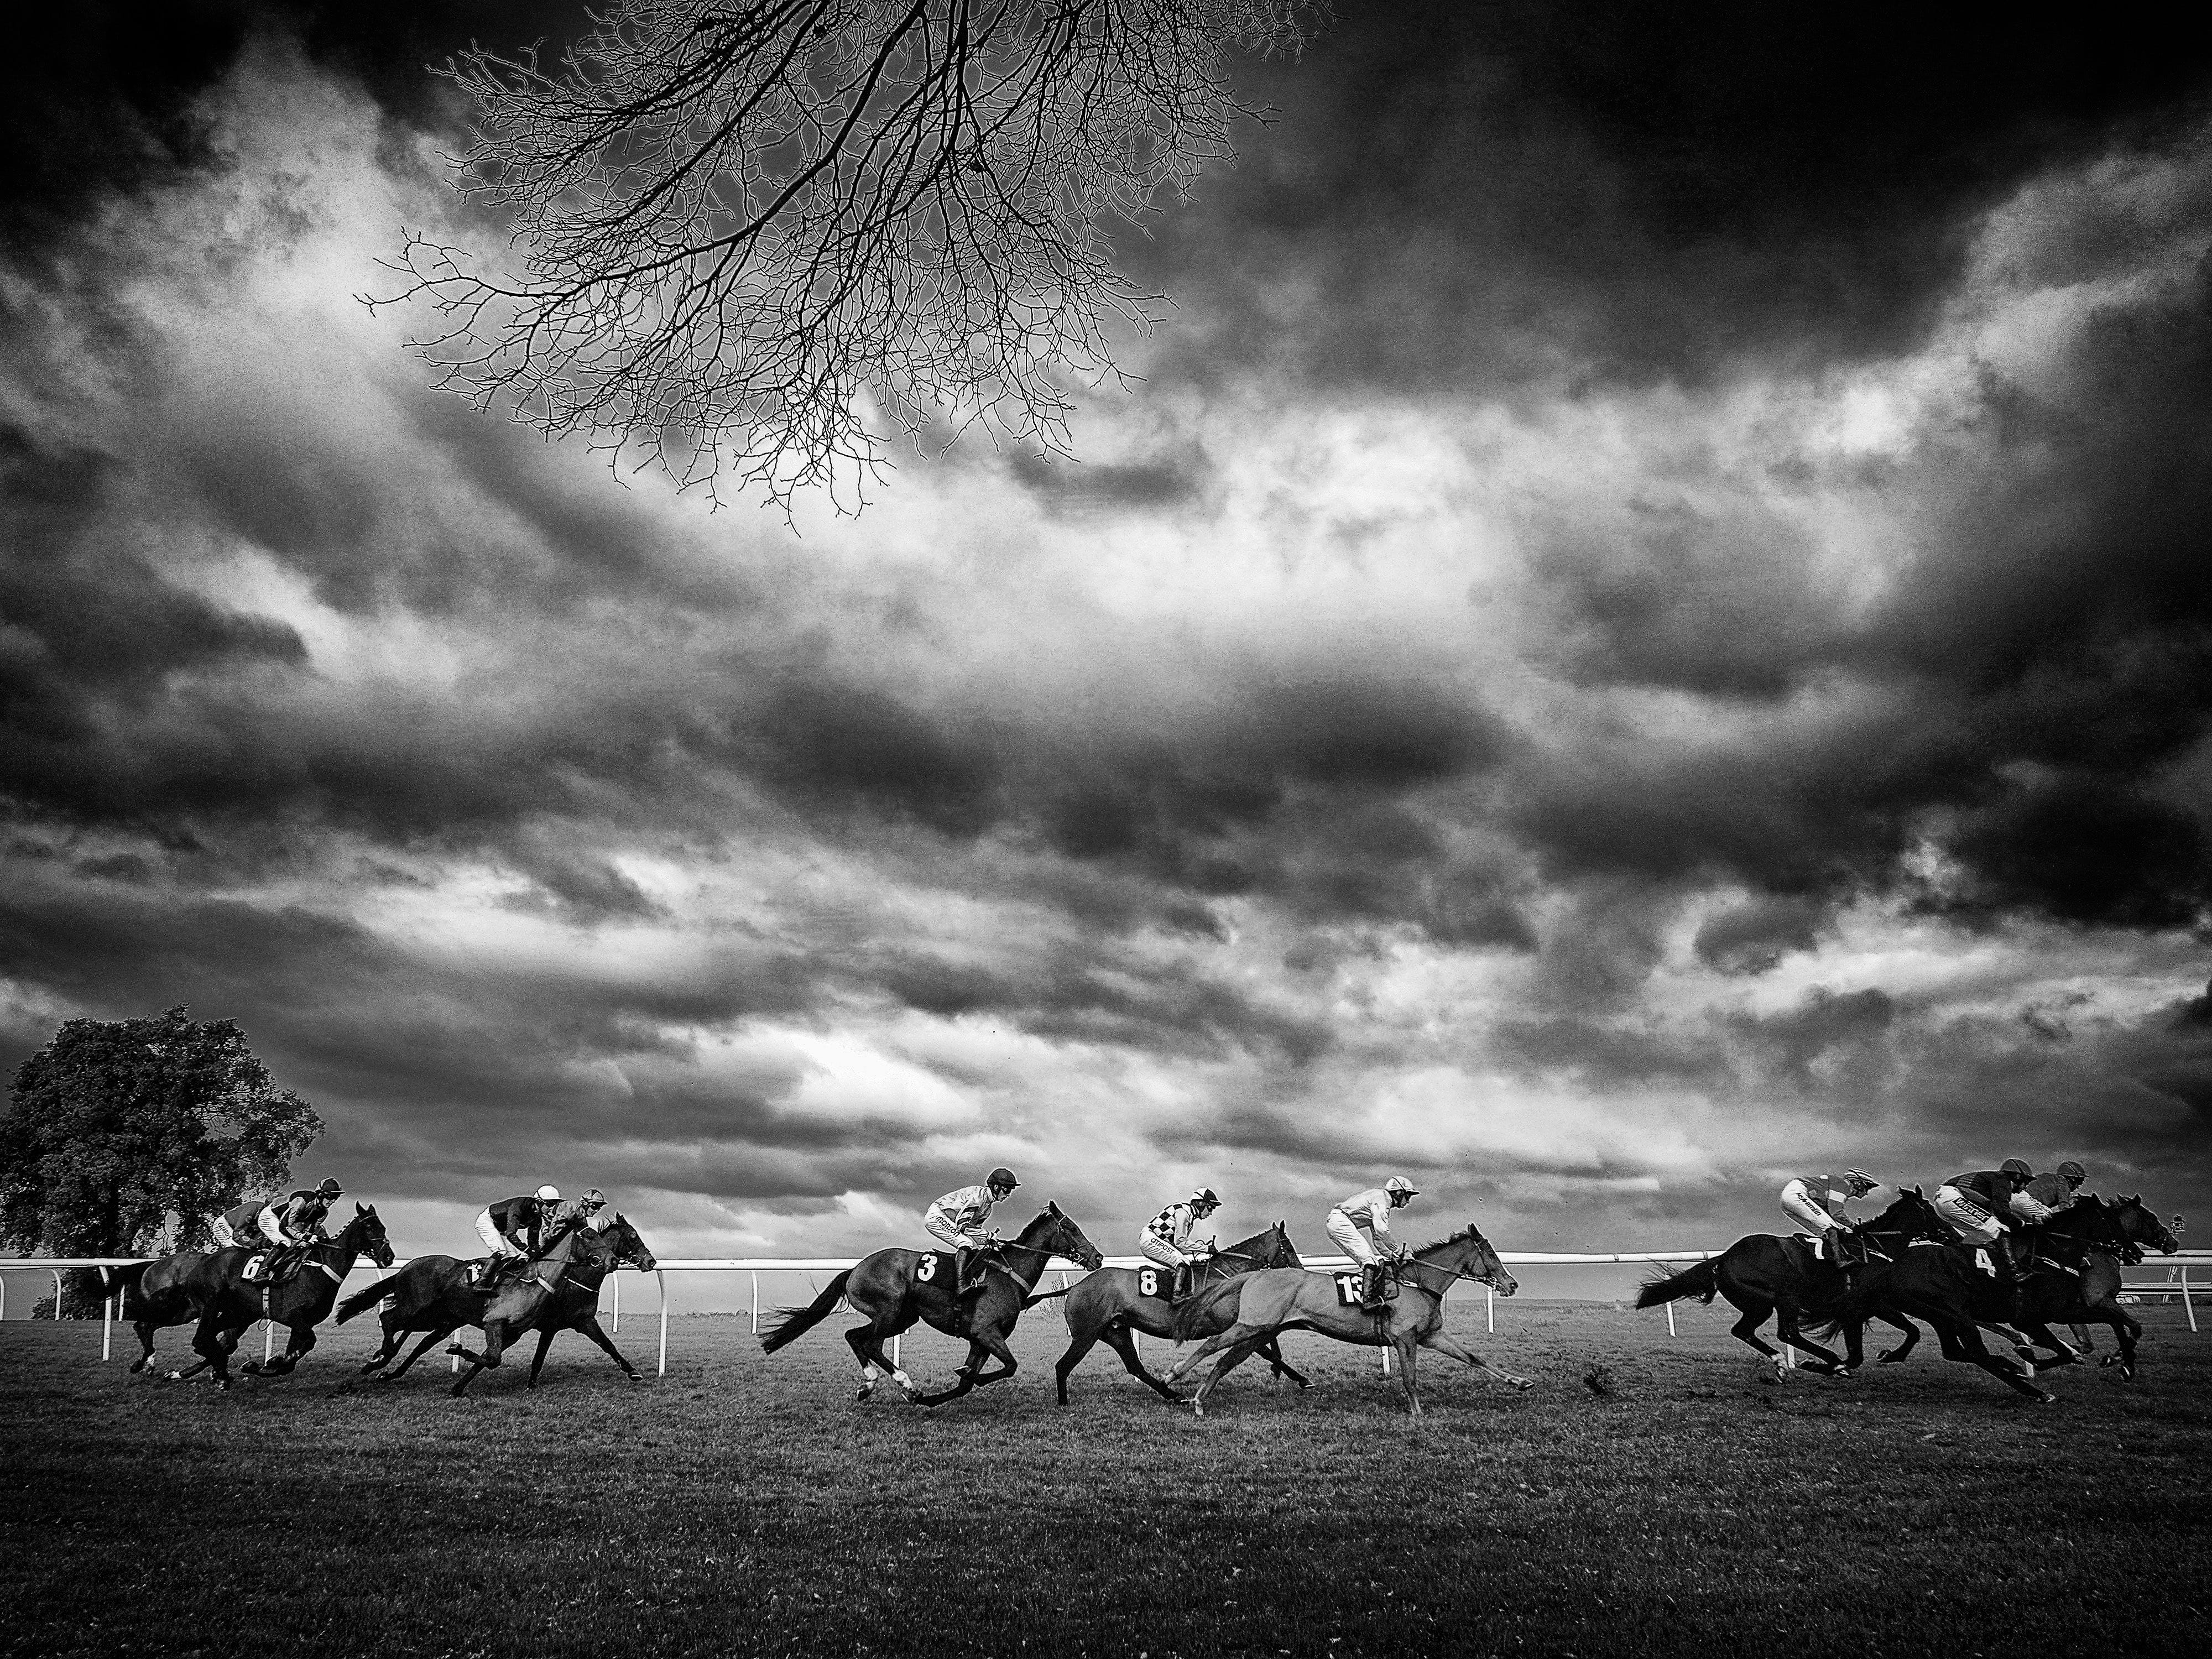 Harry Cobden riding Getaway Trump (center) on their way to winning The Strong Flavours Catering Novices' Hurdle at Plumpton Racecourse on November 19, 2018 in Plumpton, England.